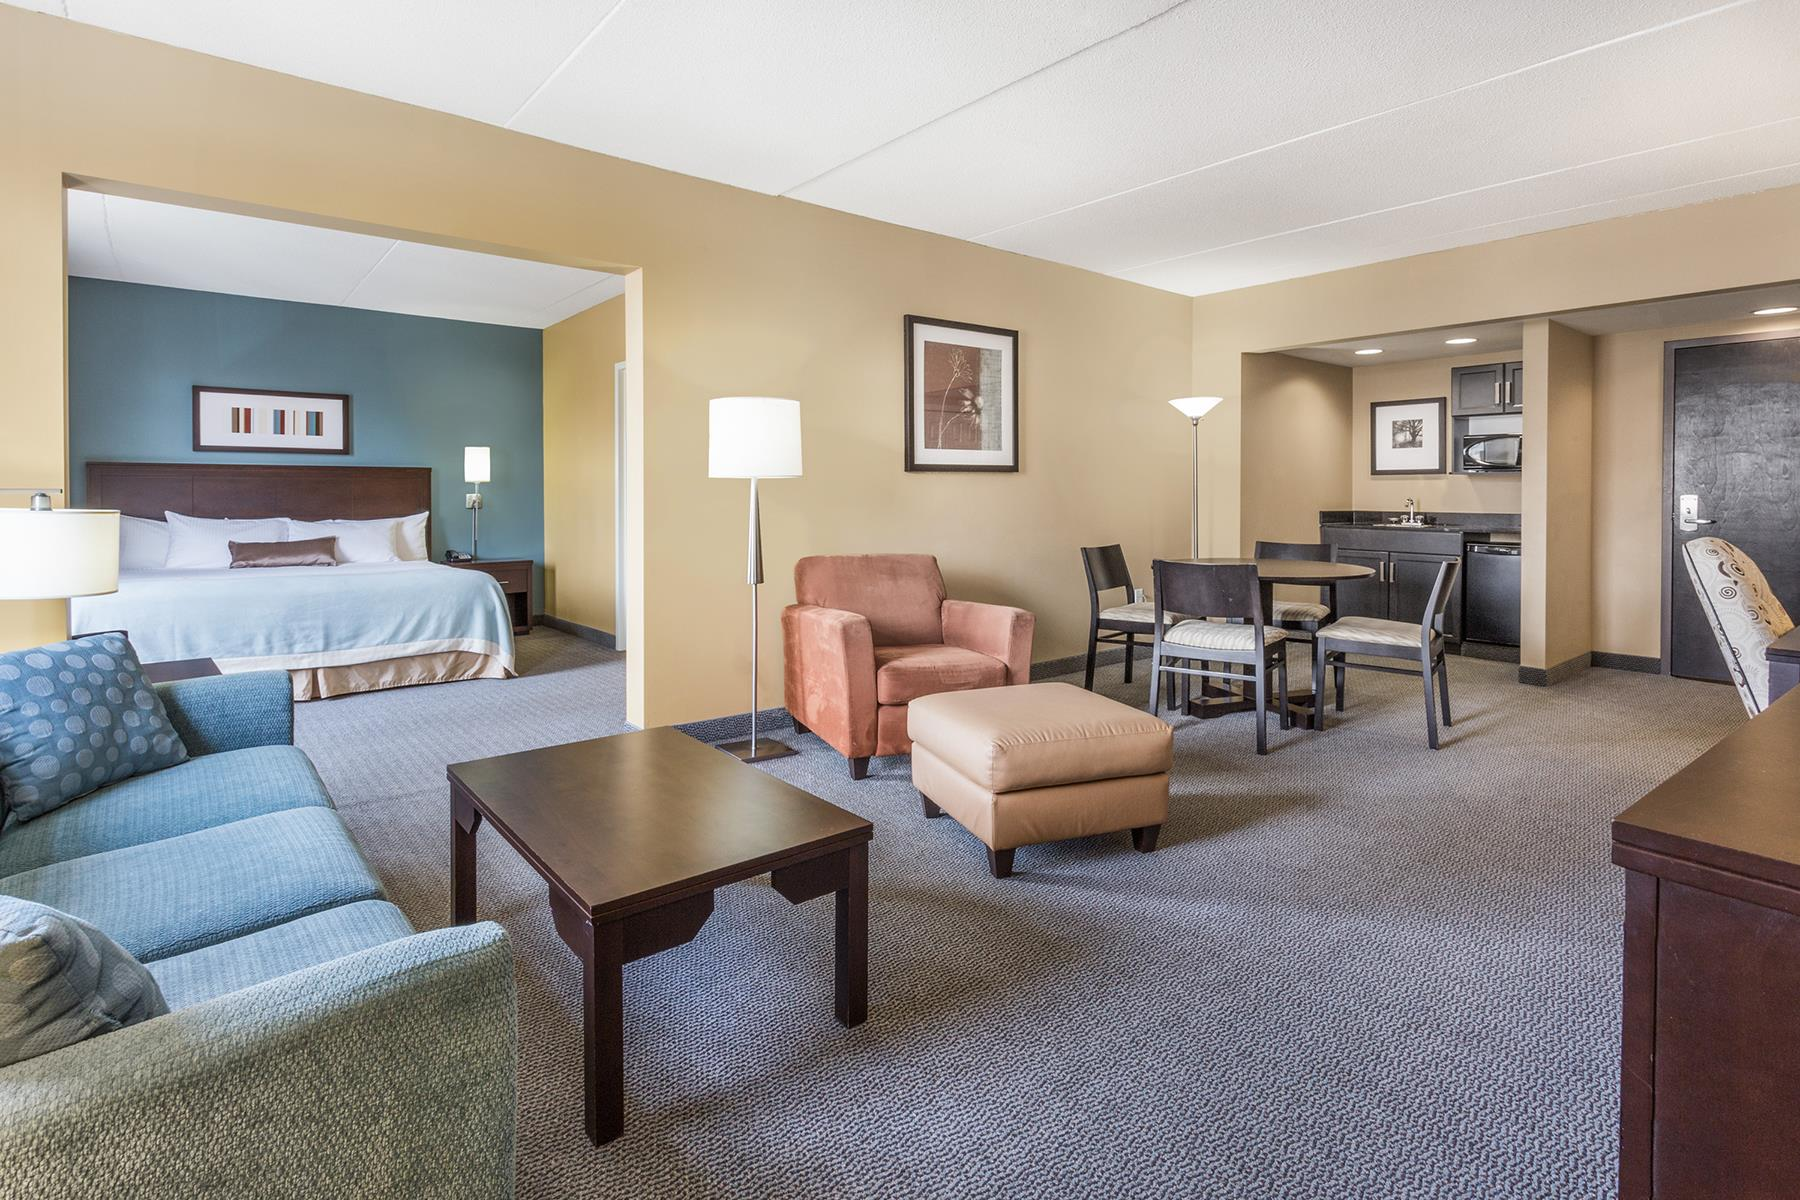 A spacious king suite at the Wyndham Regina SK resort with a mini kitchen and quality furnishings